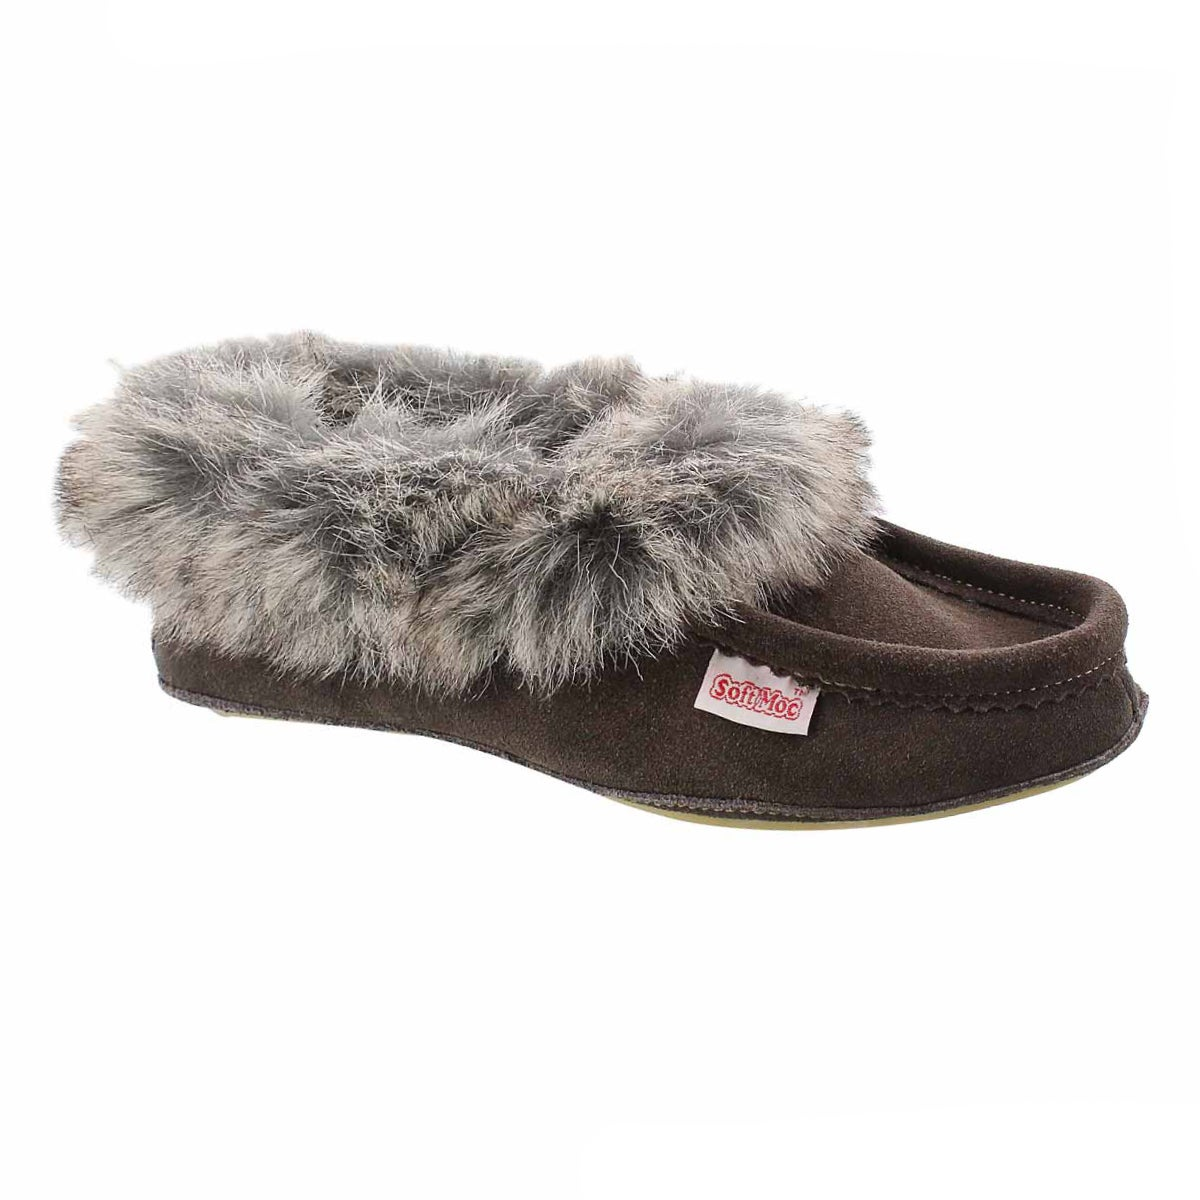 Women's CUTE FAUX U grey moccasins